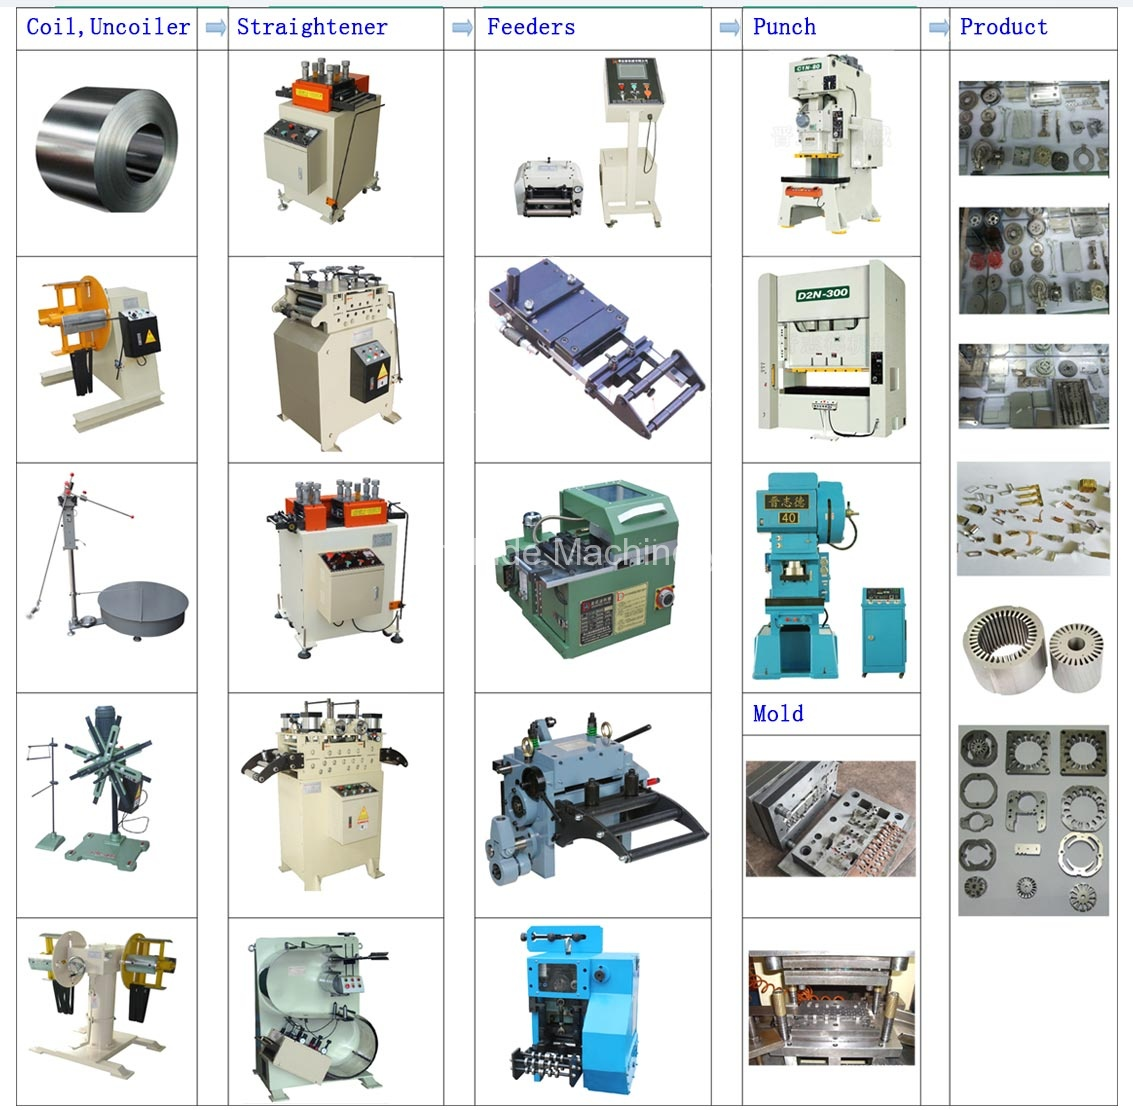 Stamping automation equipment